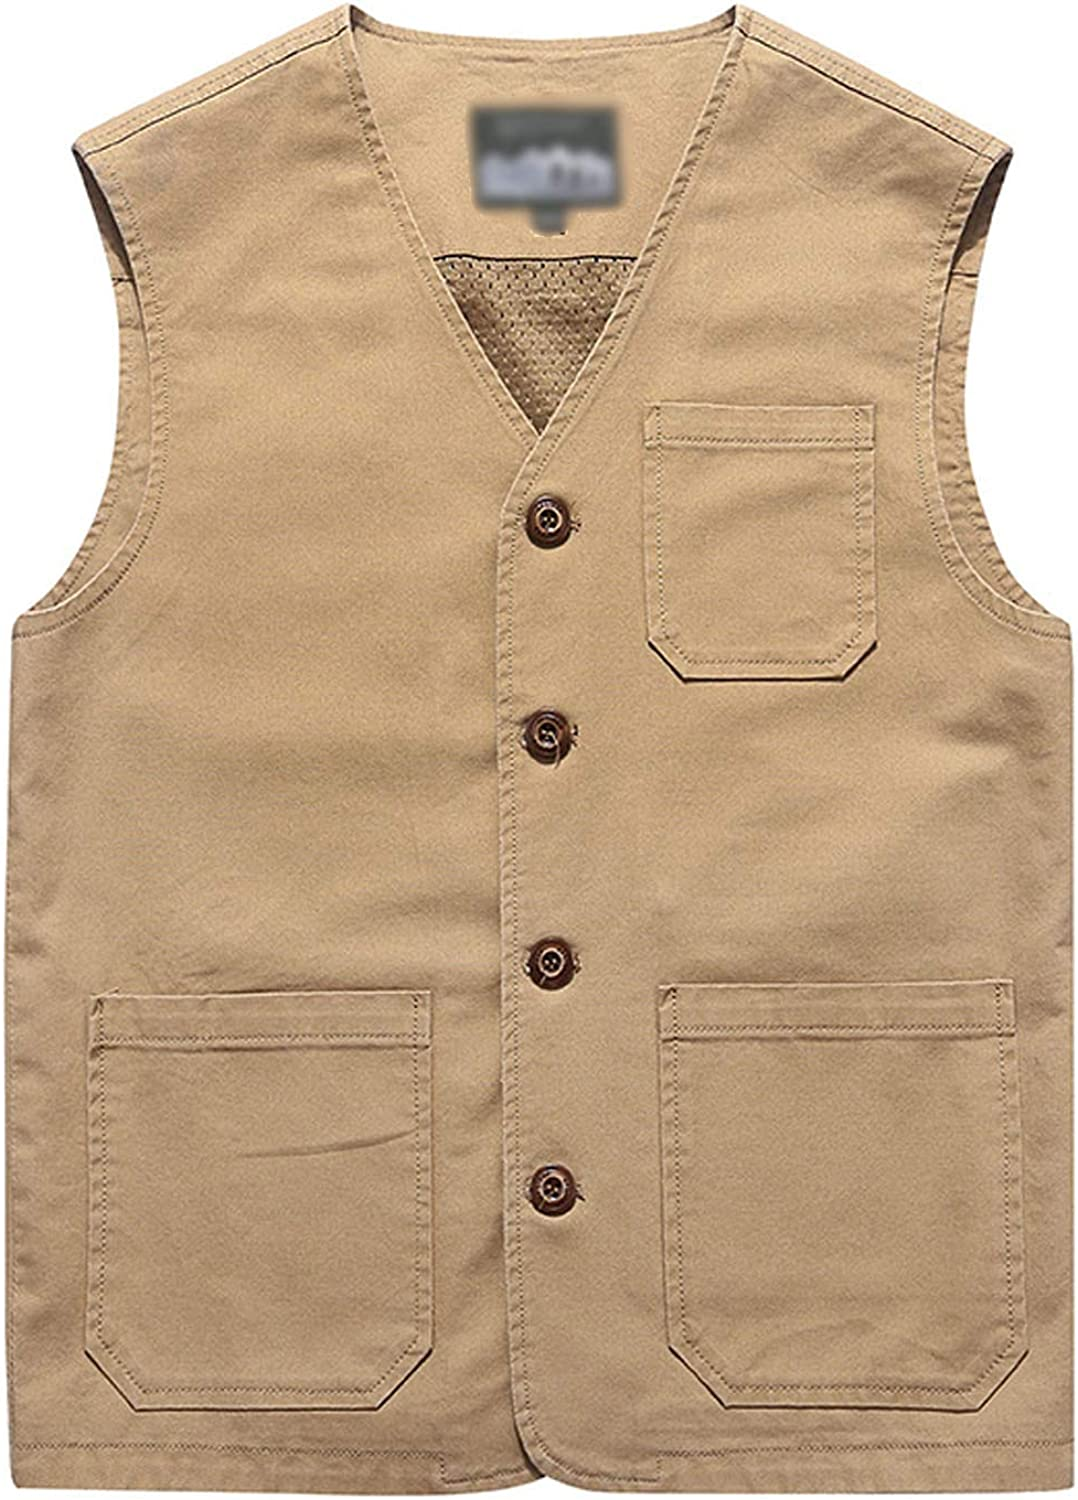 1920s Style Mens Vests Flygo Mens Casual Cotton Outdoor Fishing Travel Safari Photo Vest with Pockets  AT vintagedancer.com